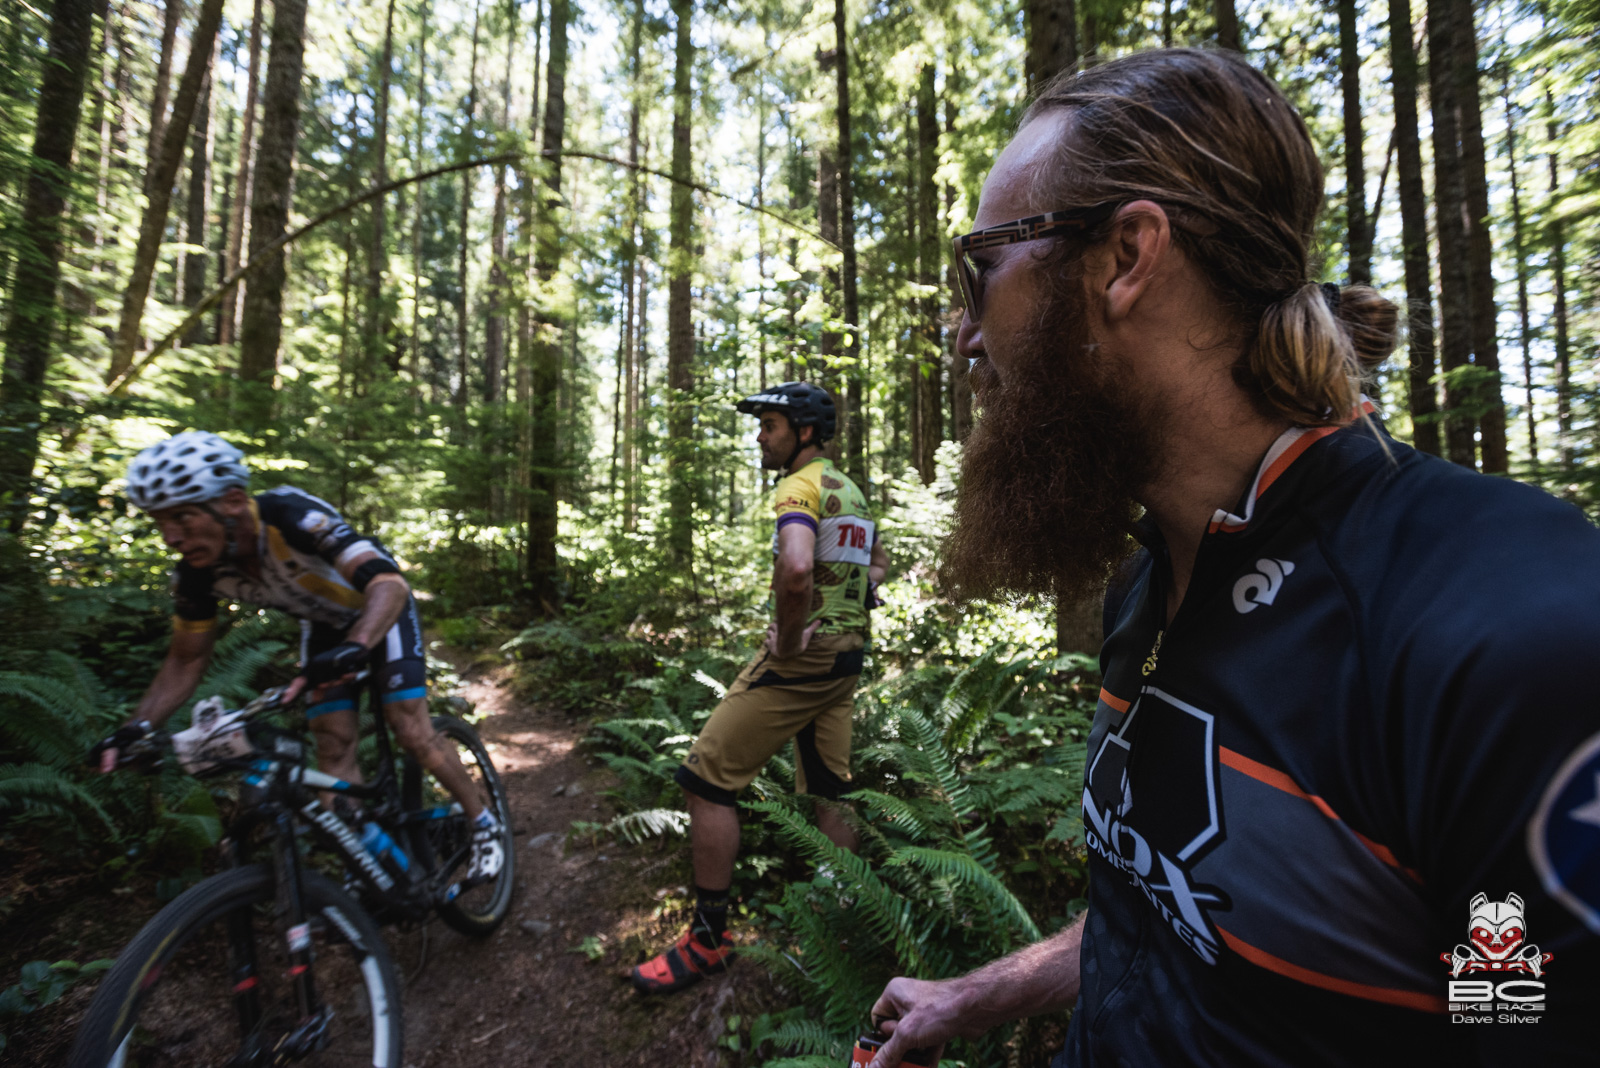 The Sechelt communitiy came out to cheer and heckle riders. Photo: Dave Silver